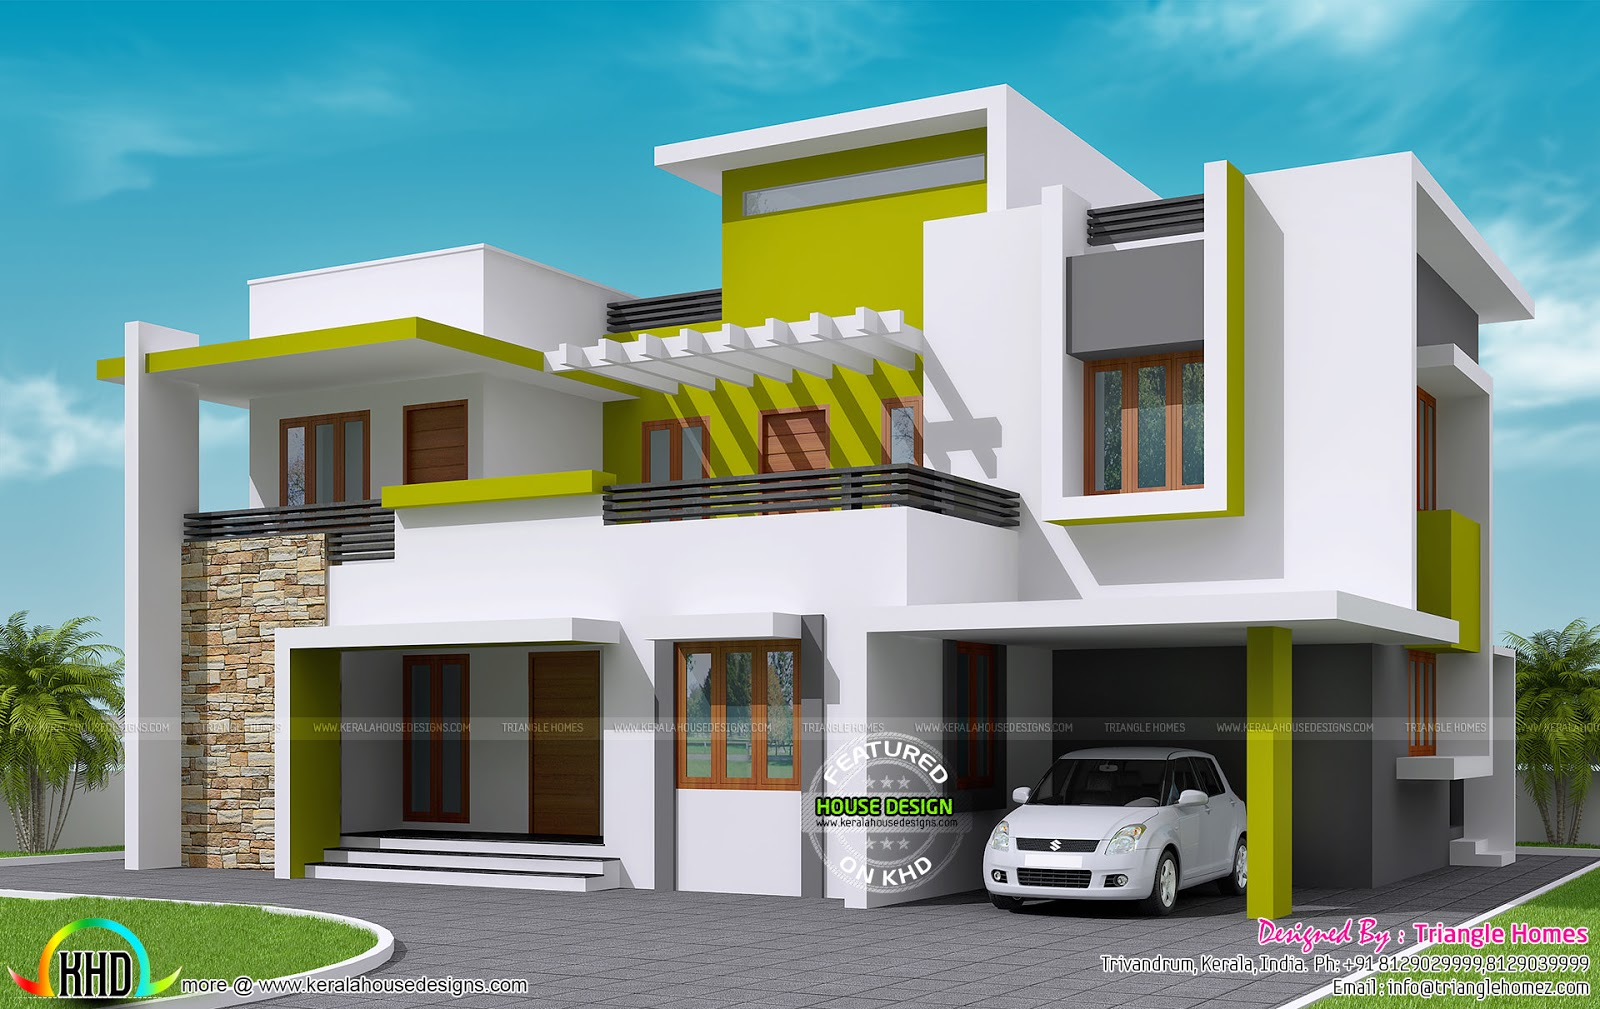 232 sq m contemporary house kerala home design and floor for Kerala model house photos with details